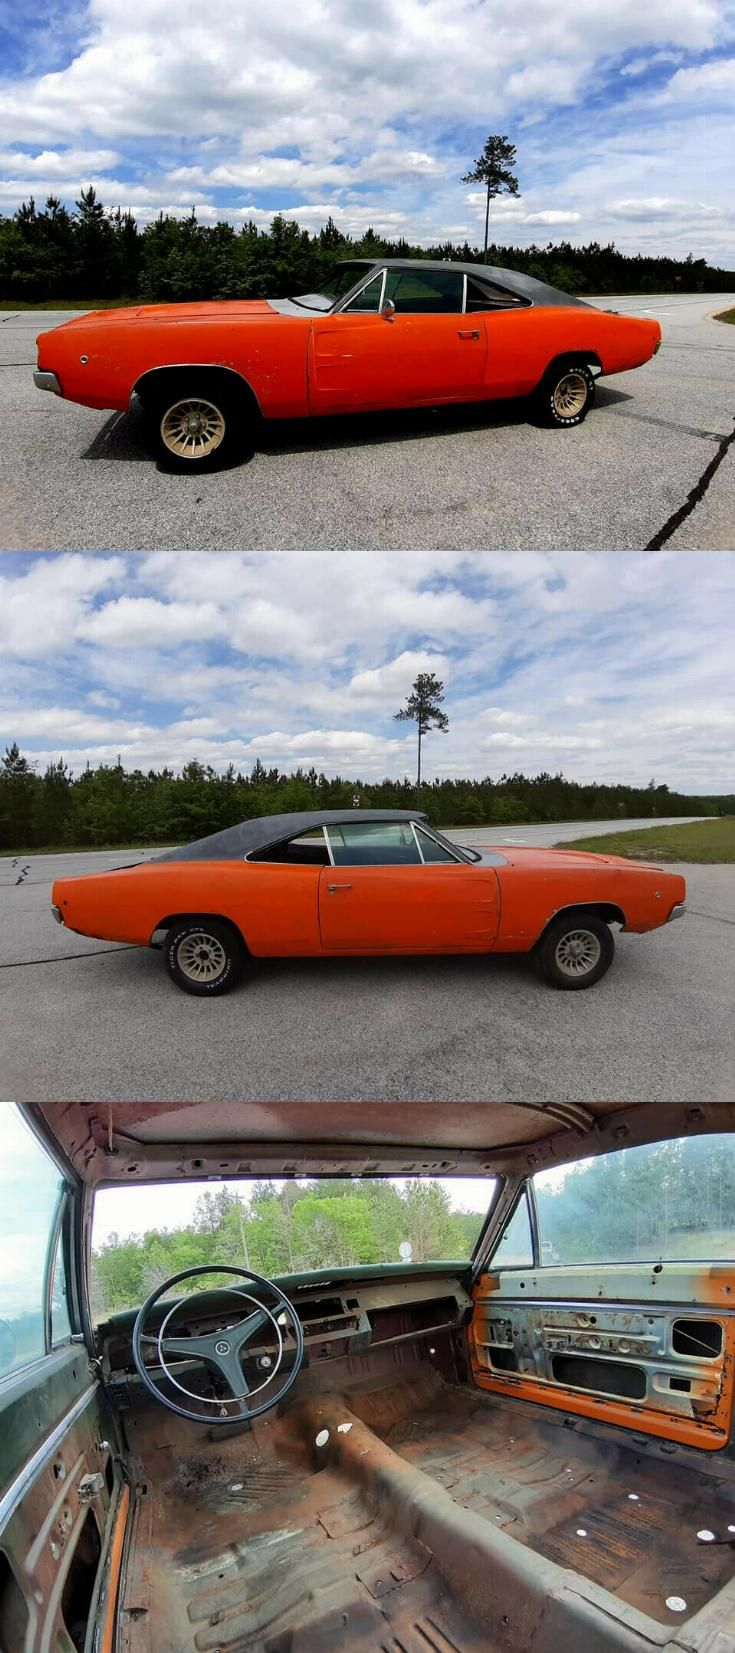 1968 Dodge Charger Project Car For Sale Cheap : dodge, charger, project, cheap, Solid, Dodge, Charger, Project, Charger,